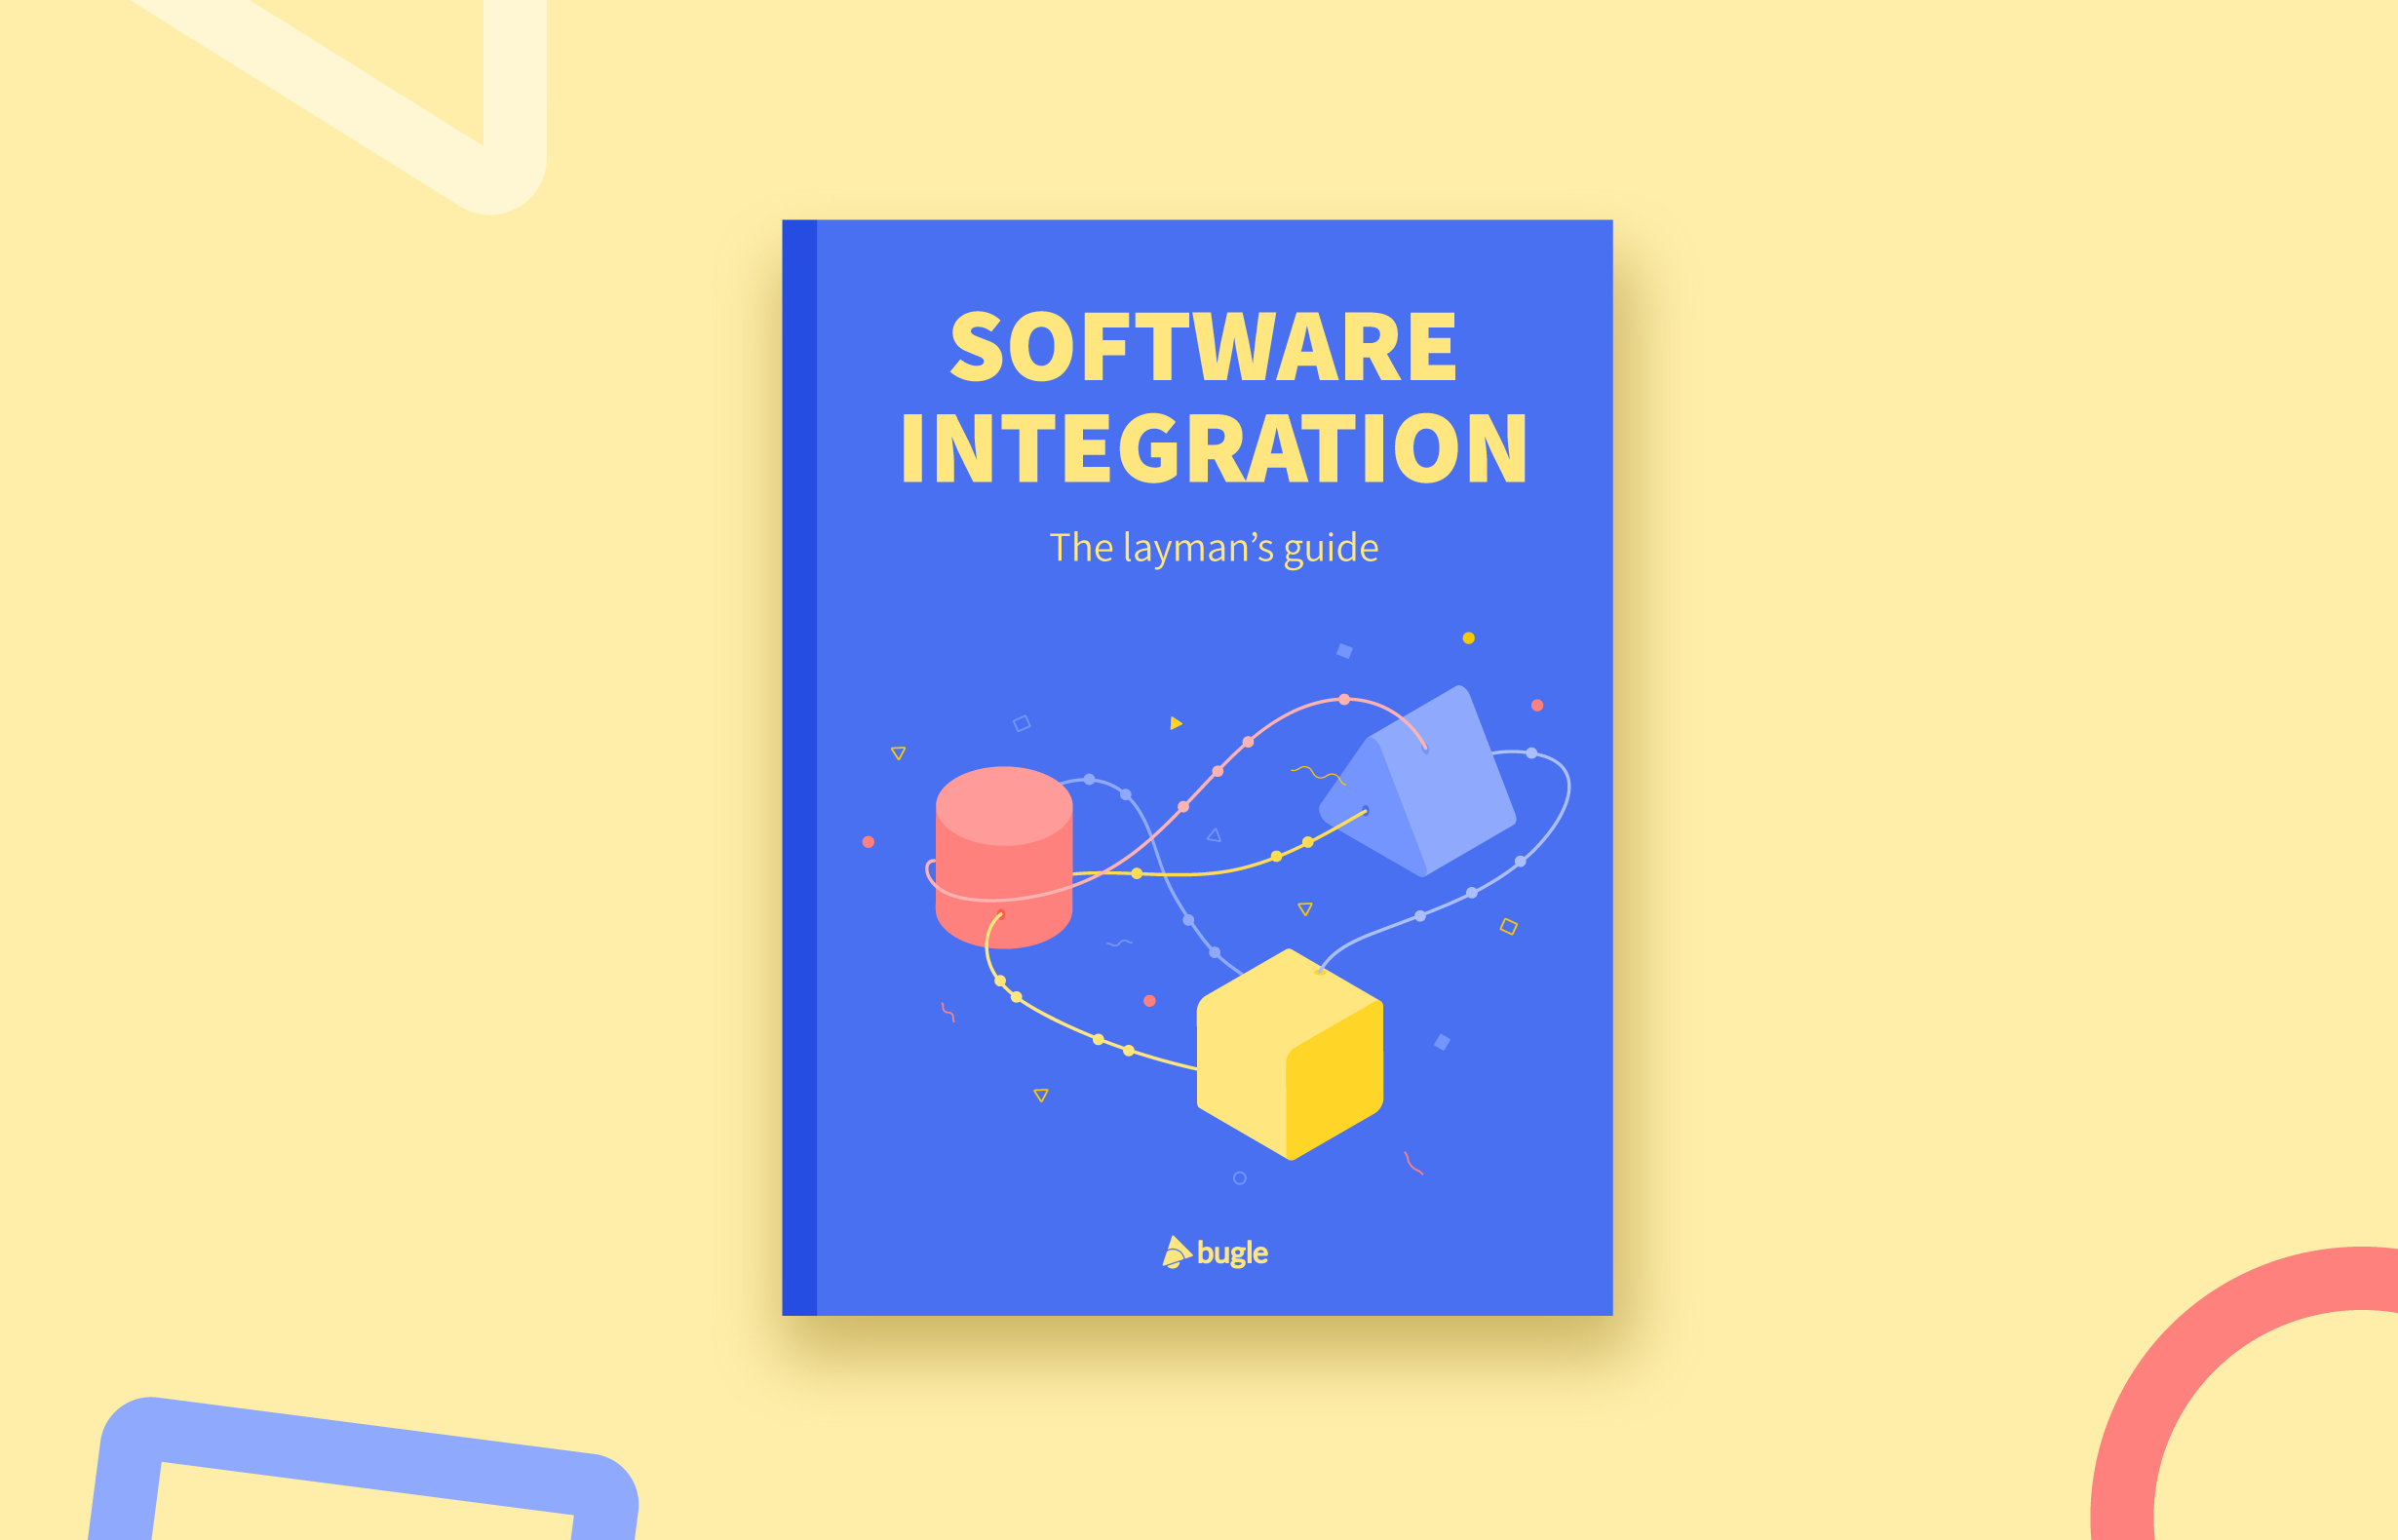 Software integration the layman's guide